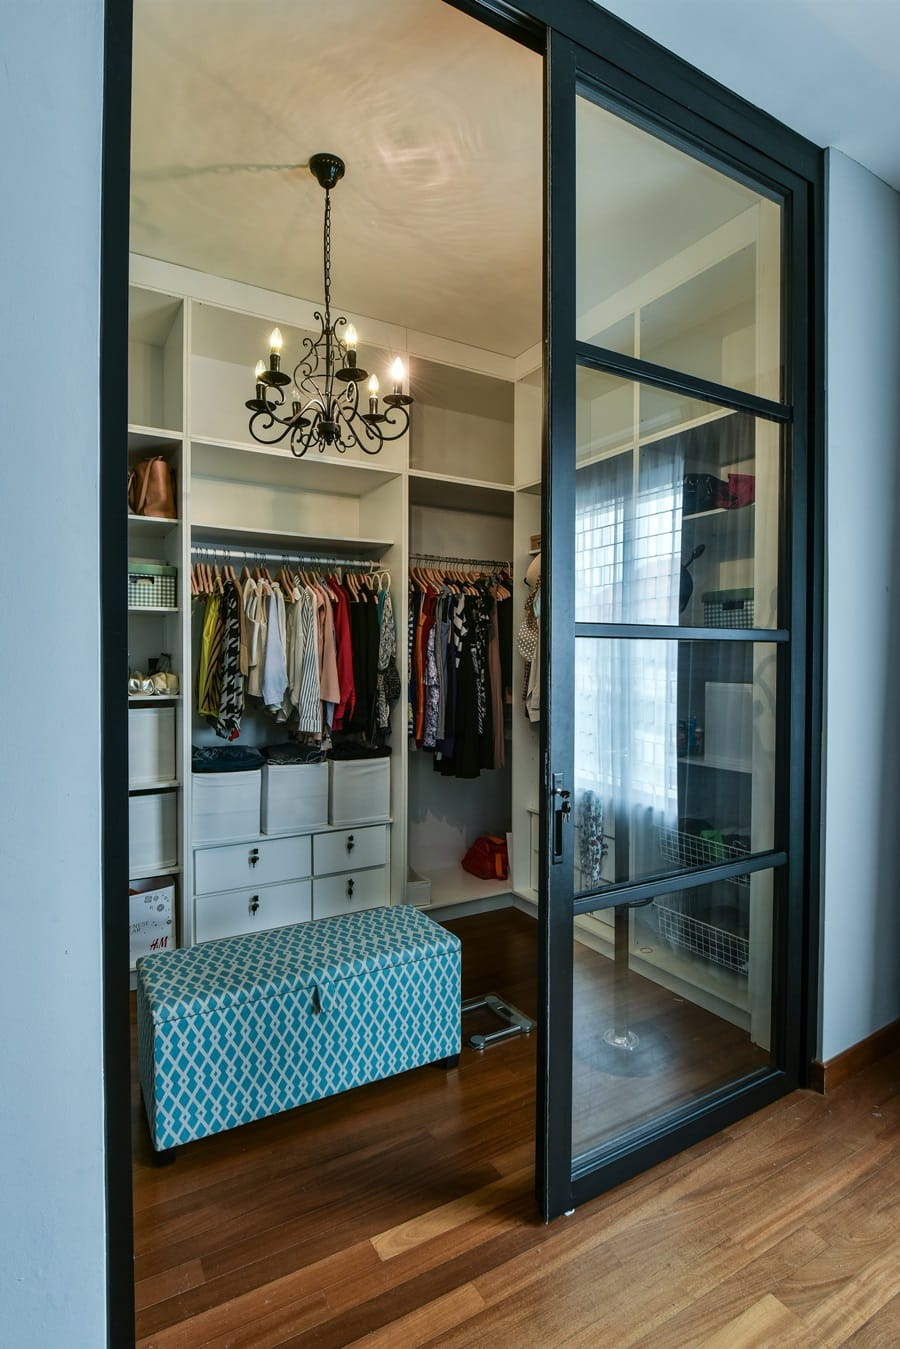 Malaysia Home Renovation Blog 2 Storey Terrace House Renovation 7 Creating An Ambiance Of